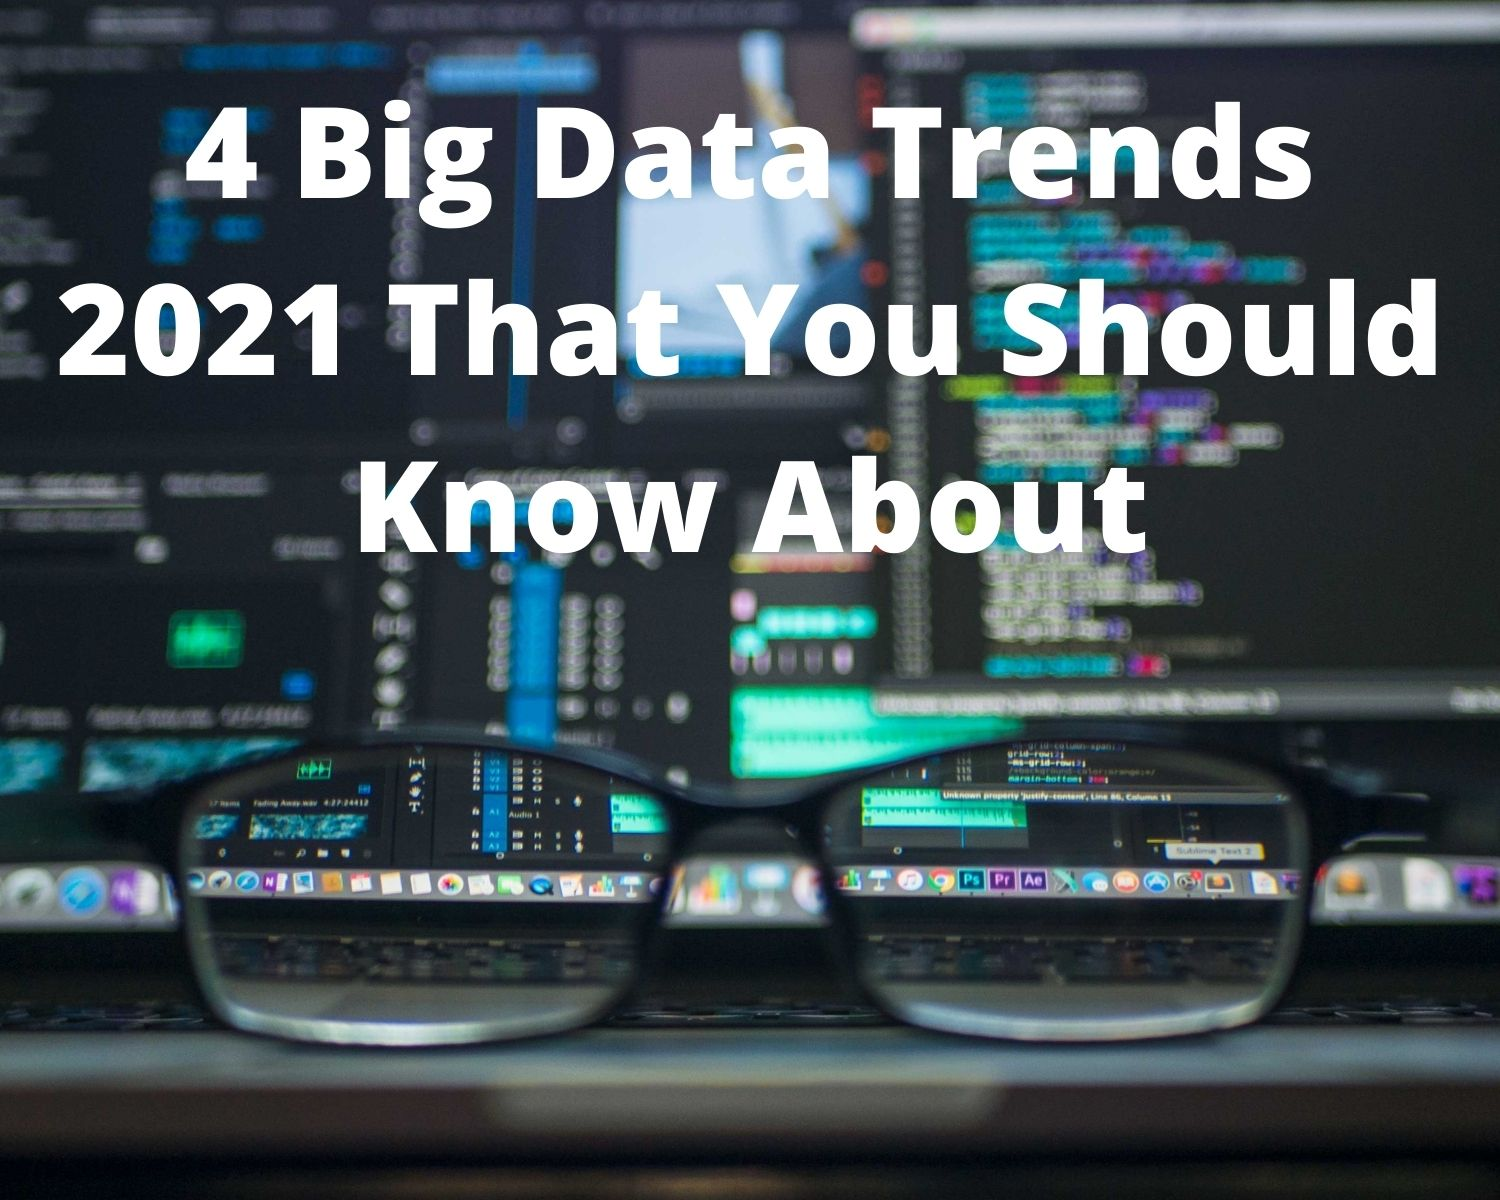 4 Big Data Trends That Will Dominate 2021